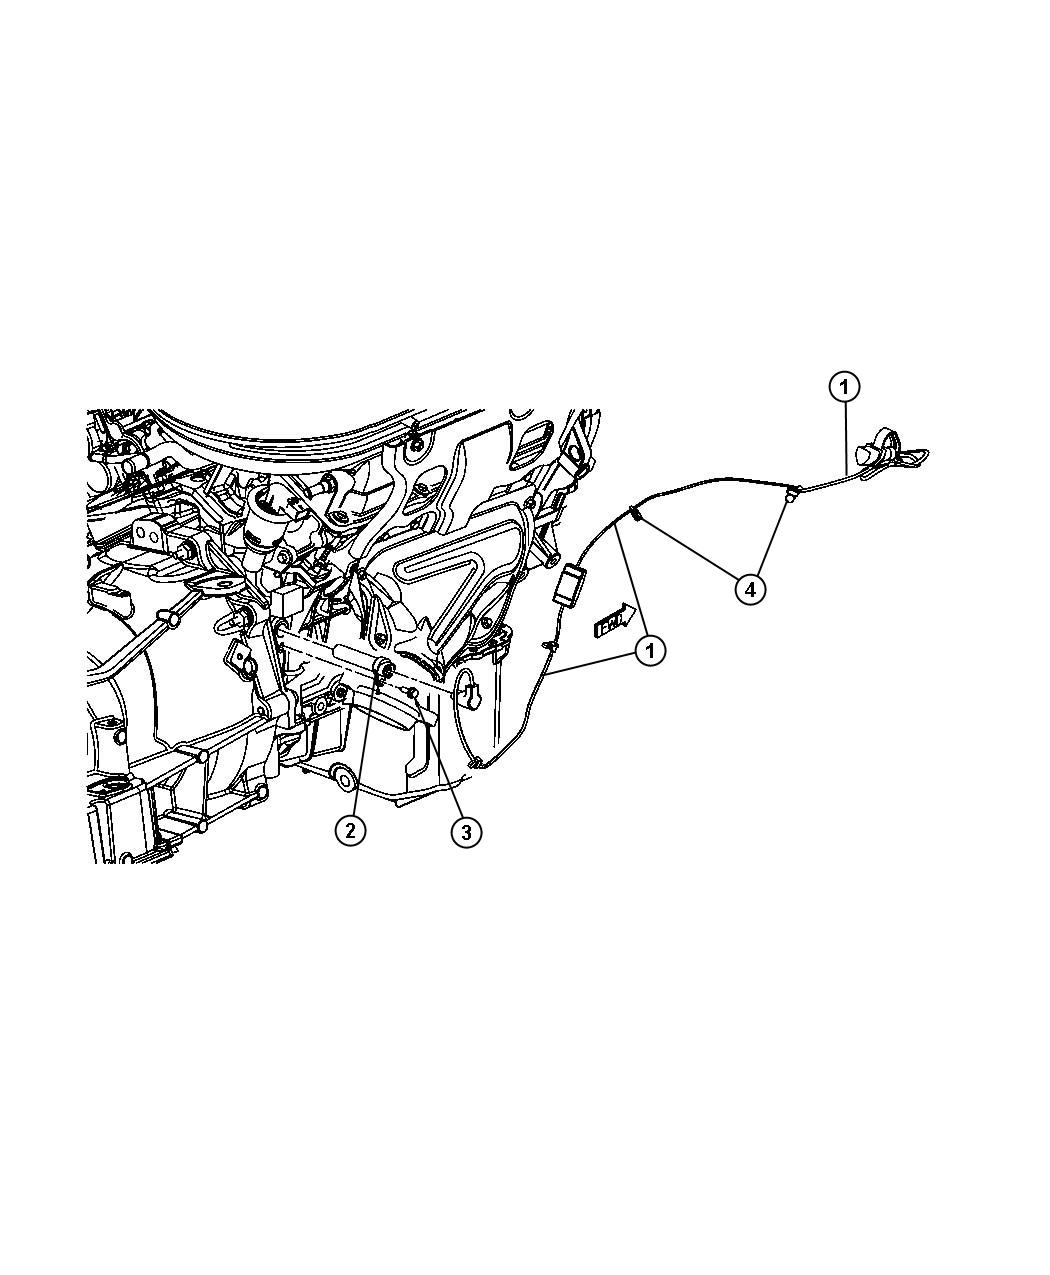 Jeep Yj Engine Block Diagram Wiring Library 2014 Wrangler